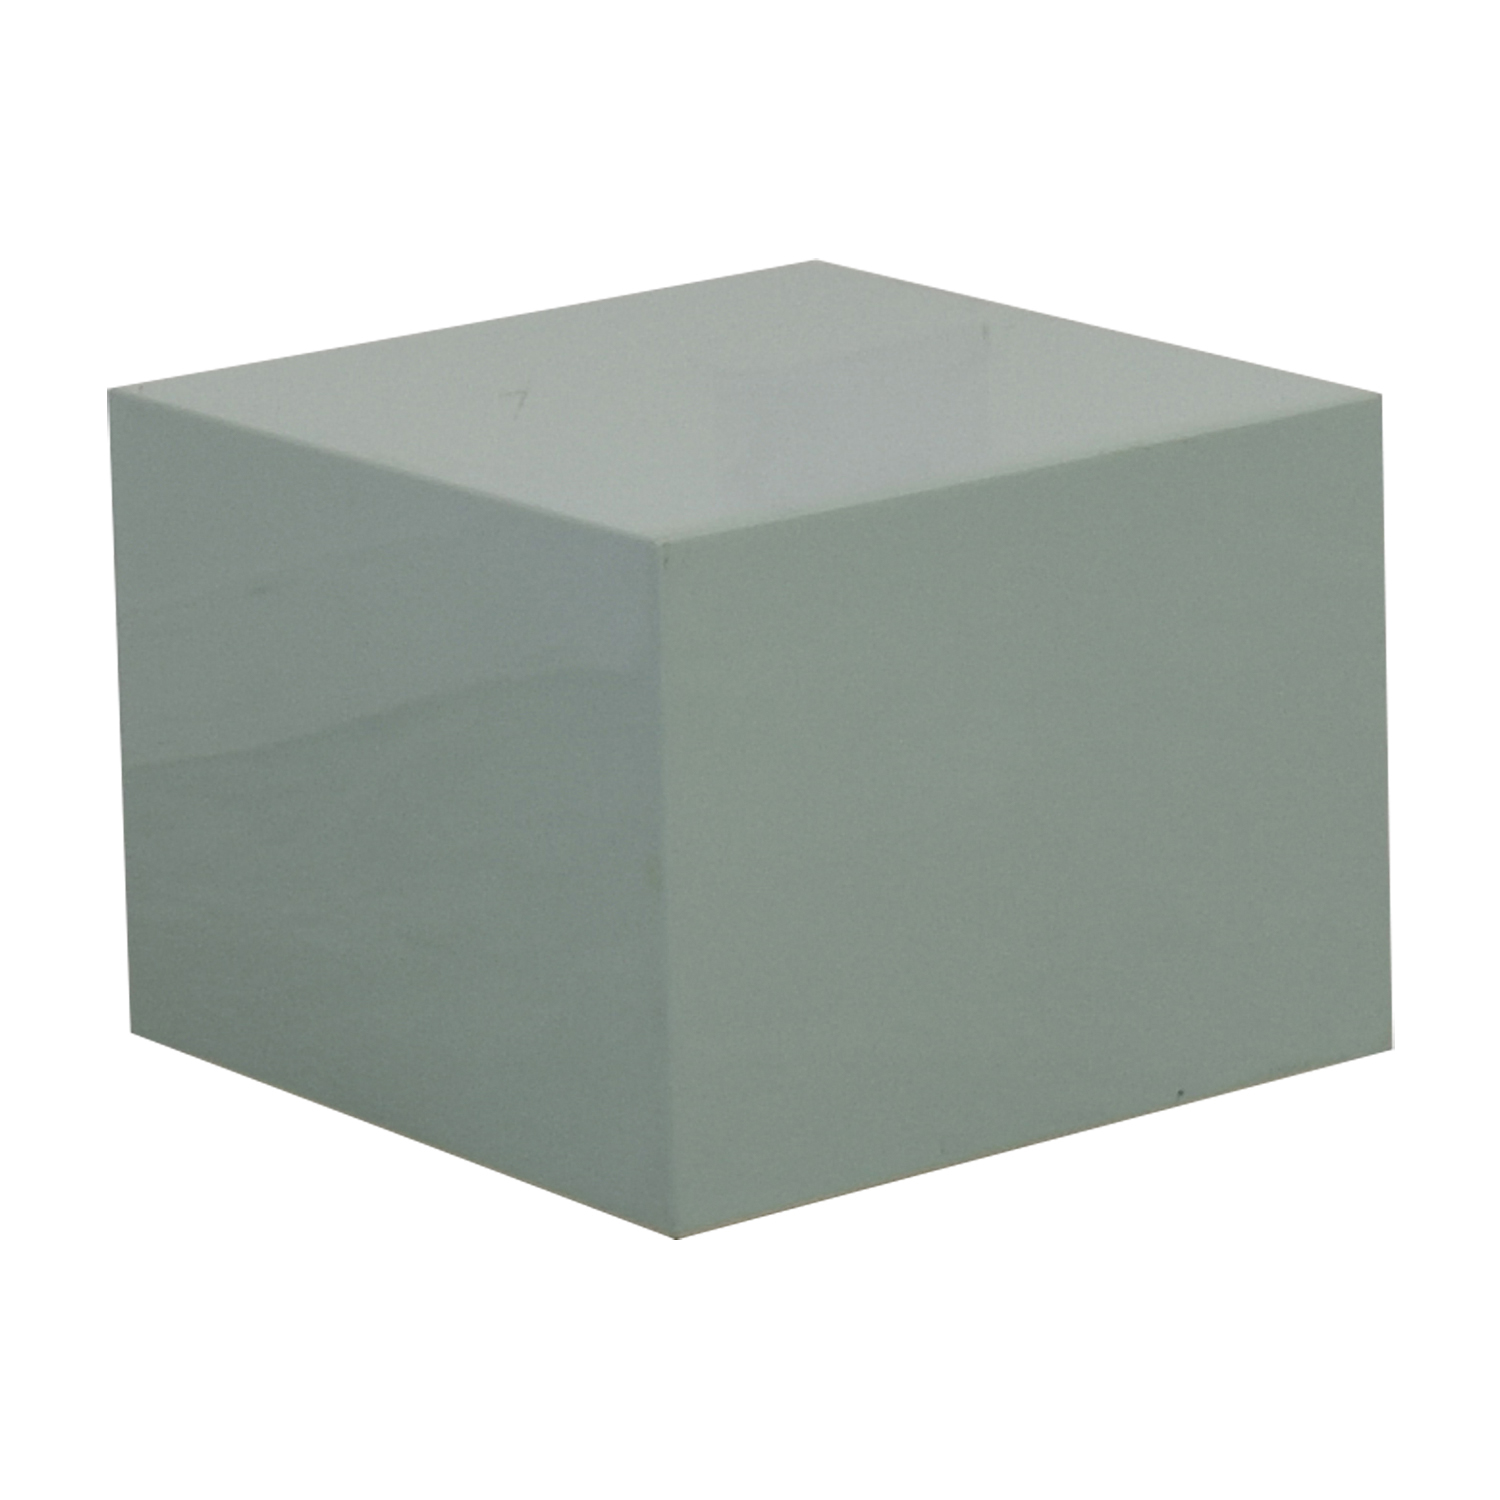 CB2 CB2 City Slicker Mint Green Side Table nyc